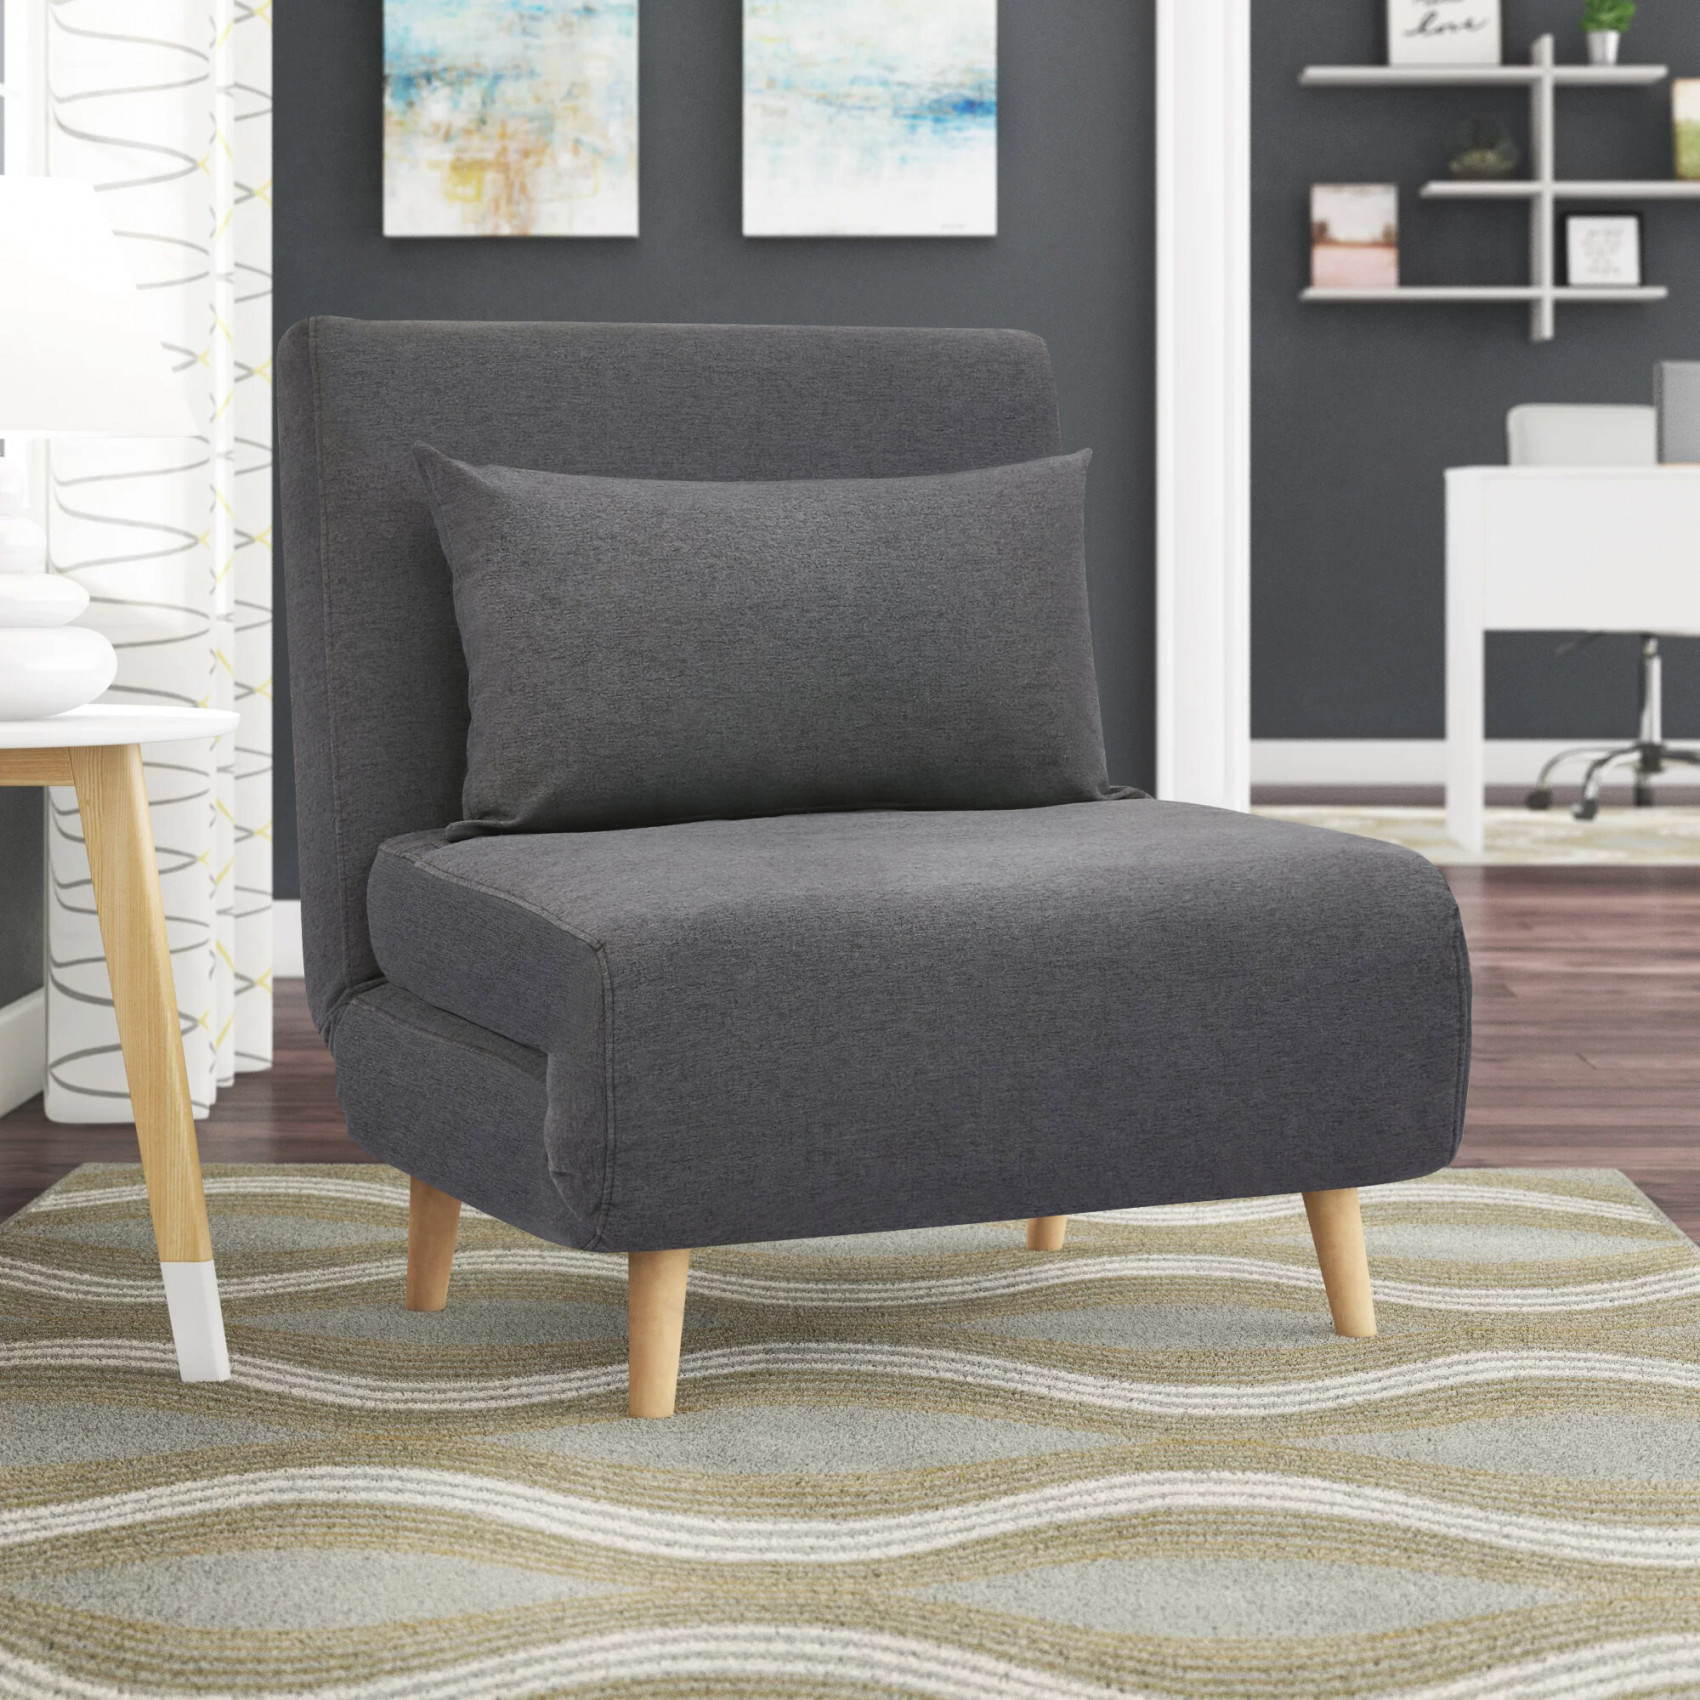 Accent Chairs | Up To 60% Off Through 01/19 | Wayfair with regard to 15 Beautiful Ideas Sitting Chairs For Living Room